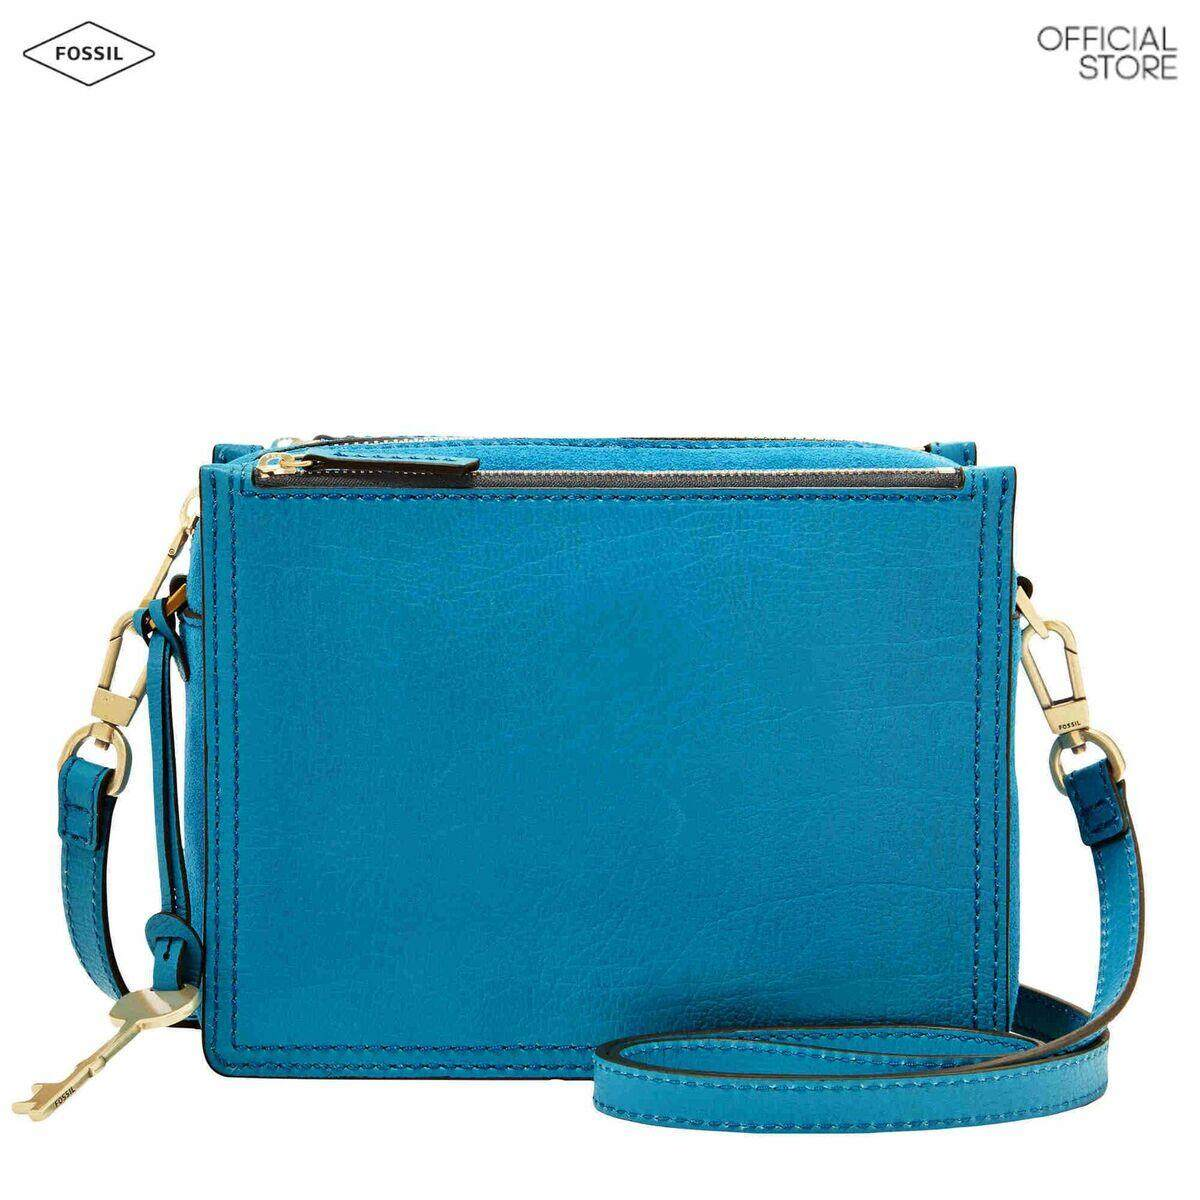 Fossil Women Bags Price In Malaysia Best Lazada Emerson Satchel Large Floral Tas Wanita Multicolor Campbell Blue Sling Bag Zb7449977